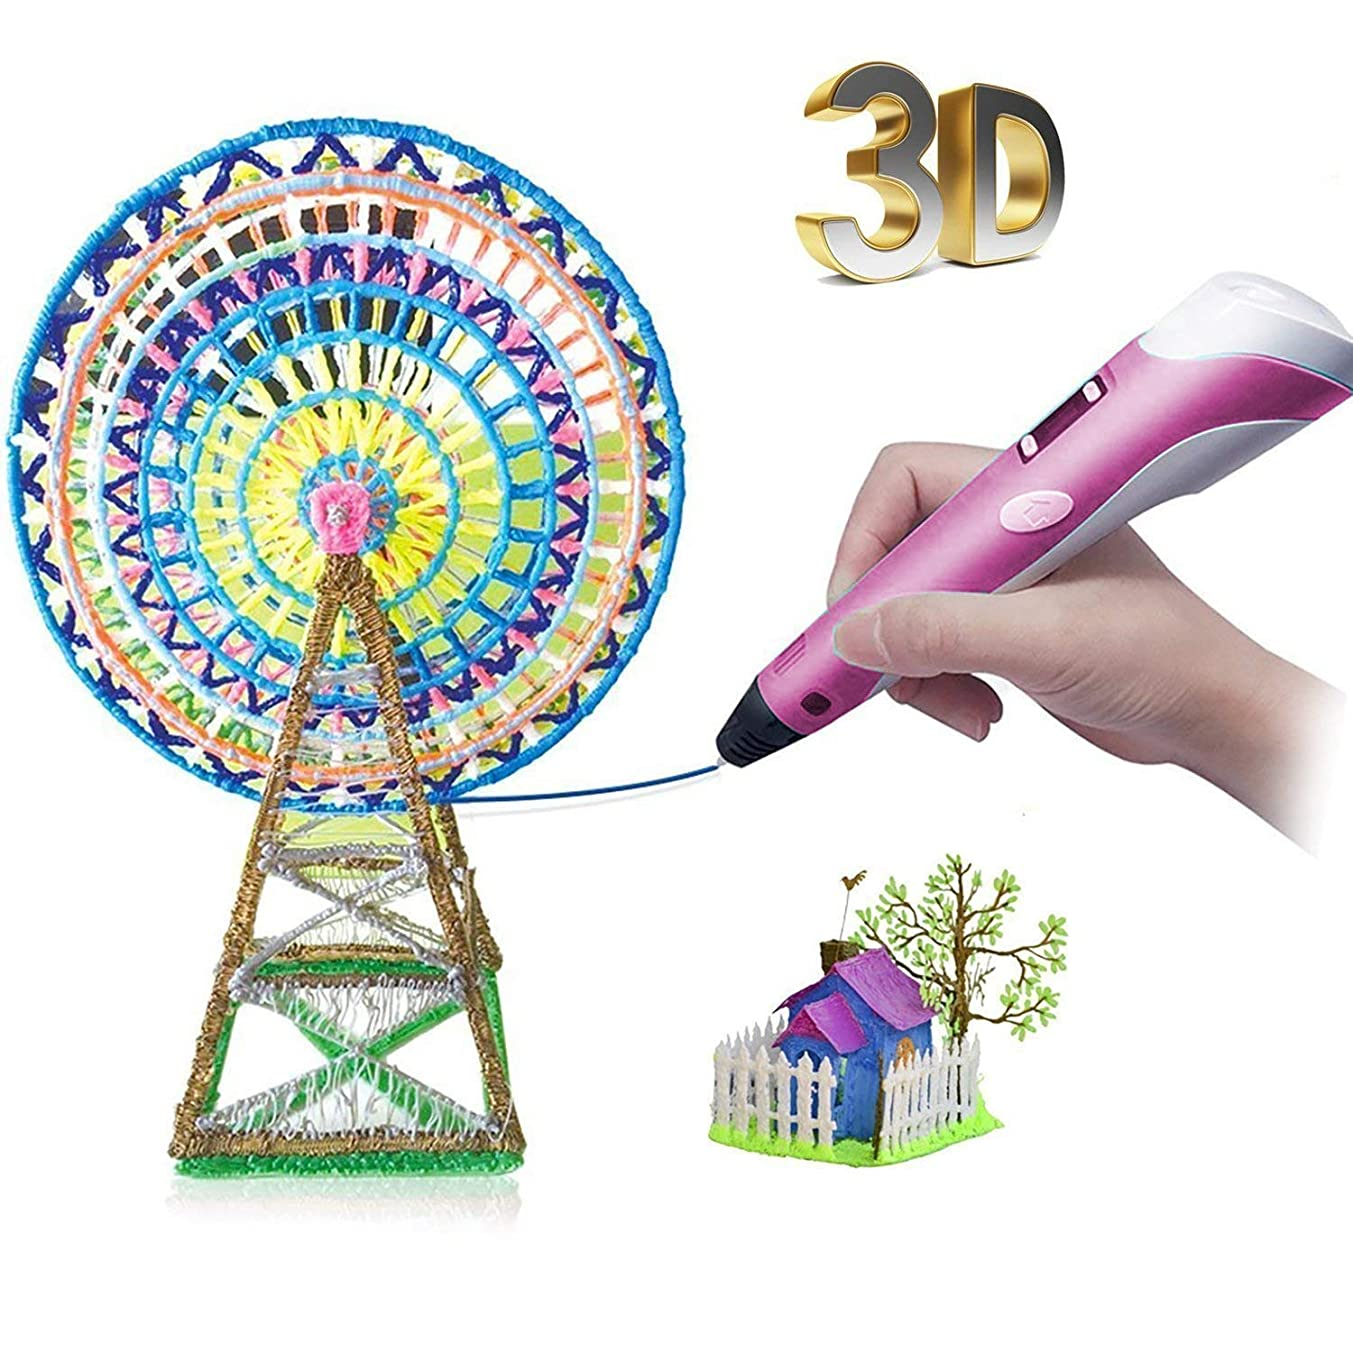 3D Pen- Birthday Gift for Kids DIY Safe Arts Crafts Creative Toys for 8 12 Year Old Girls Boys Drawing Printing Pen with Multicolor Filament Children's Day Present Unleash Creativity Thinking (Pink)